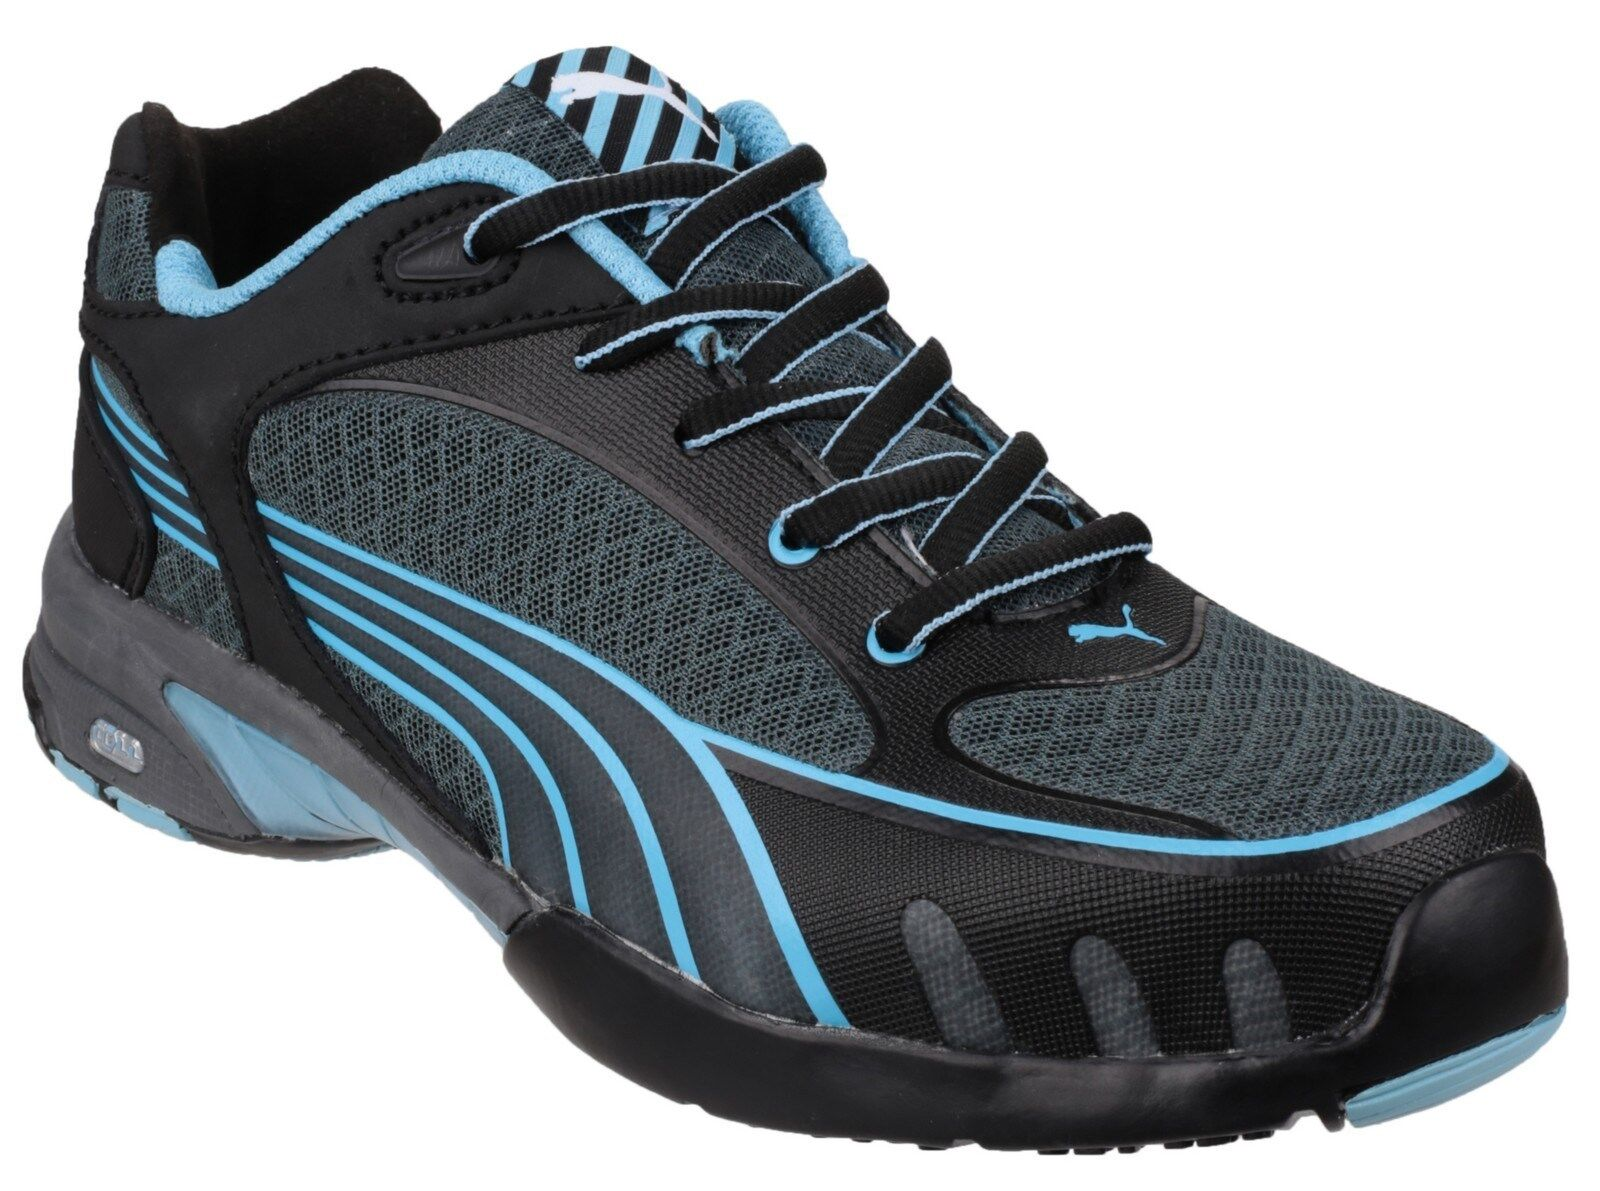 Puma Fuse Work Motion Noir /Bleu Safety femmes Industrial Work Fuse Trainers Chaussures UK2-8 d98244